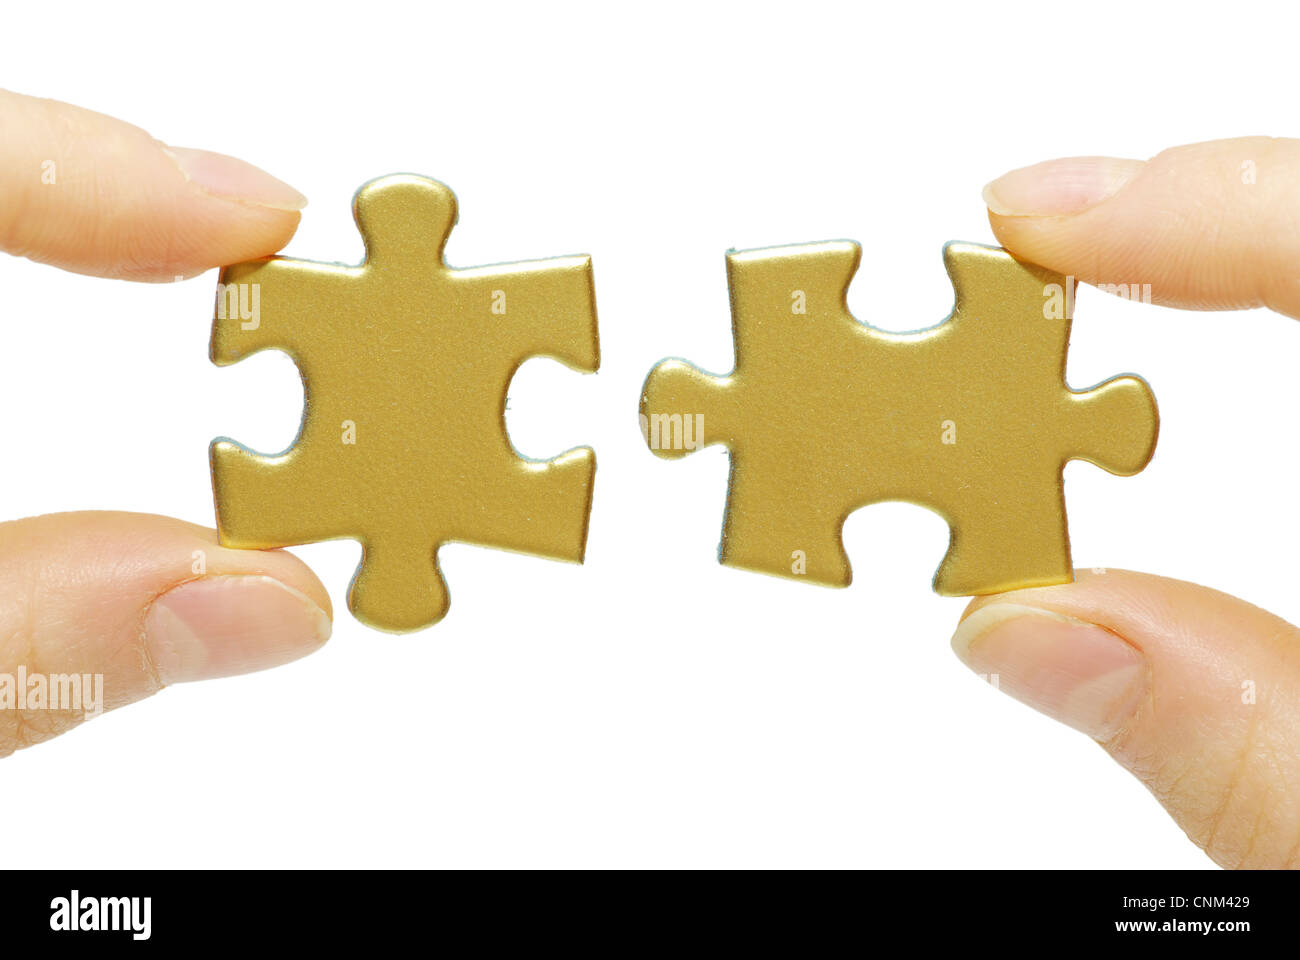 puzzle in hands isolated on white background - Stock Image